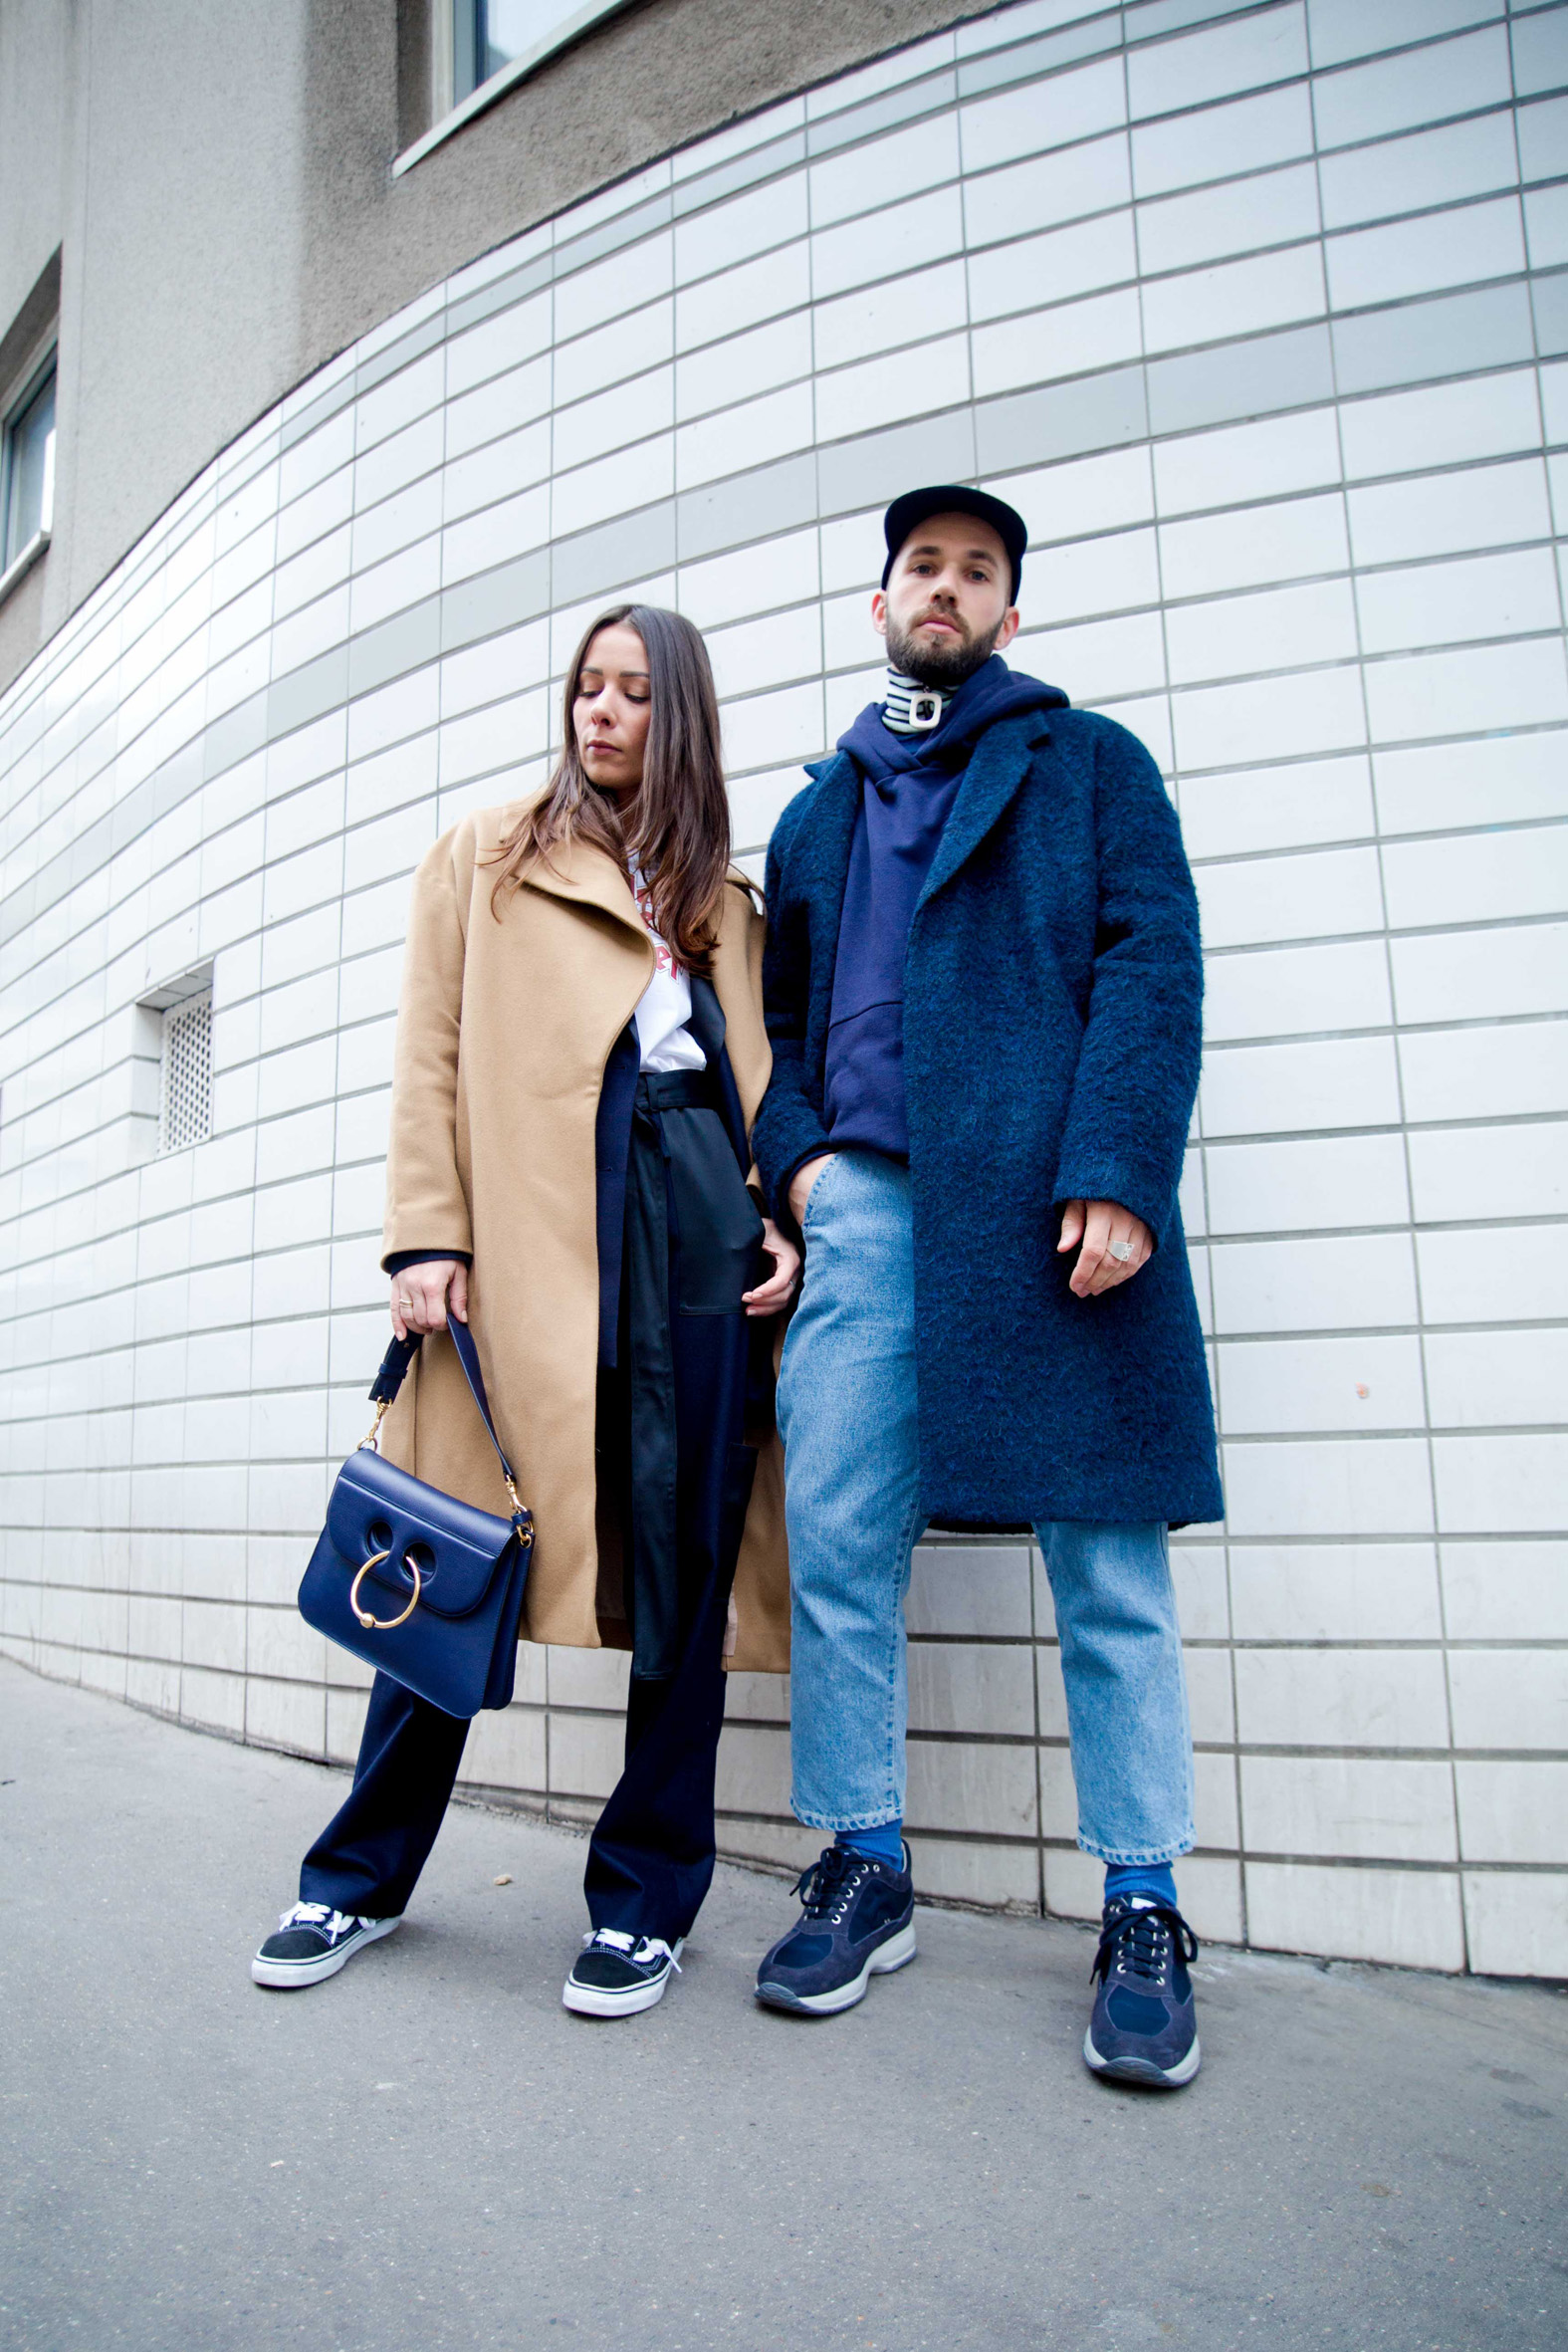 fashion-couple-blog-jaimetoutcheztoi-mode-alice-js-8